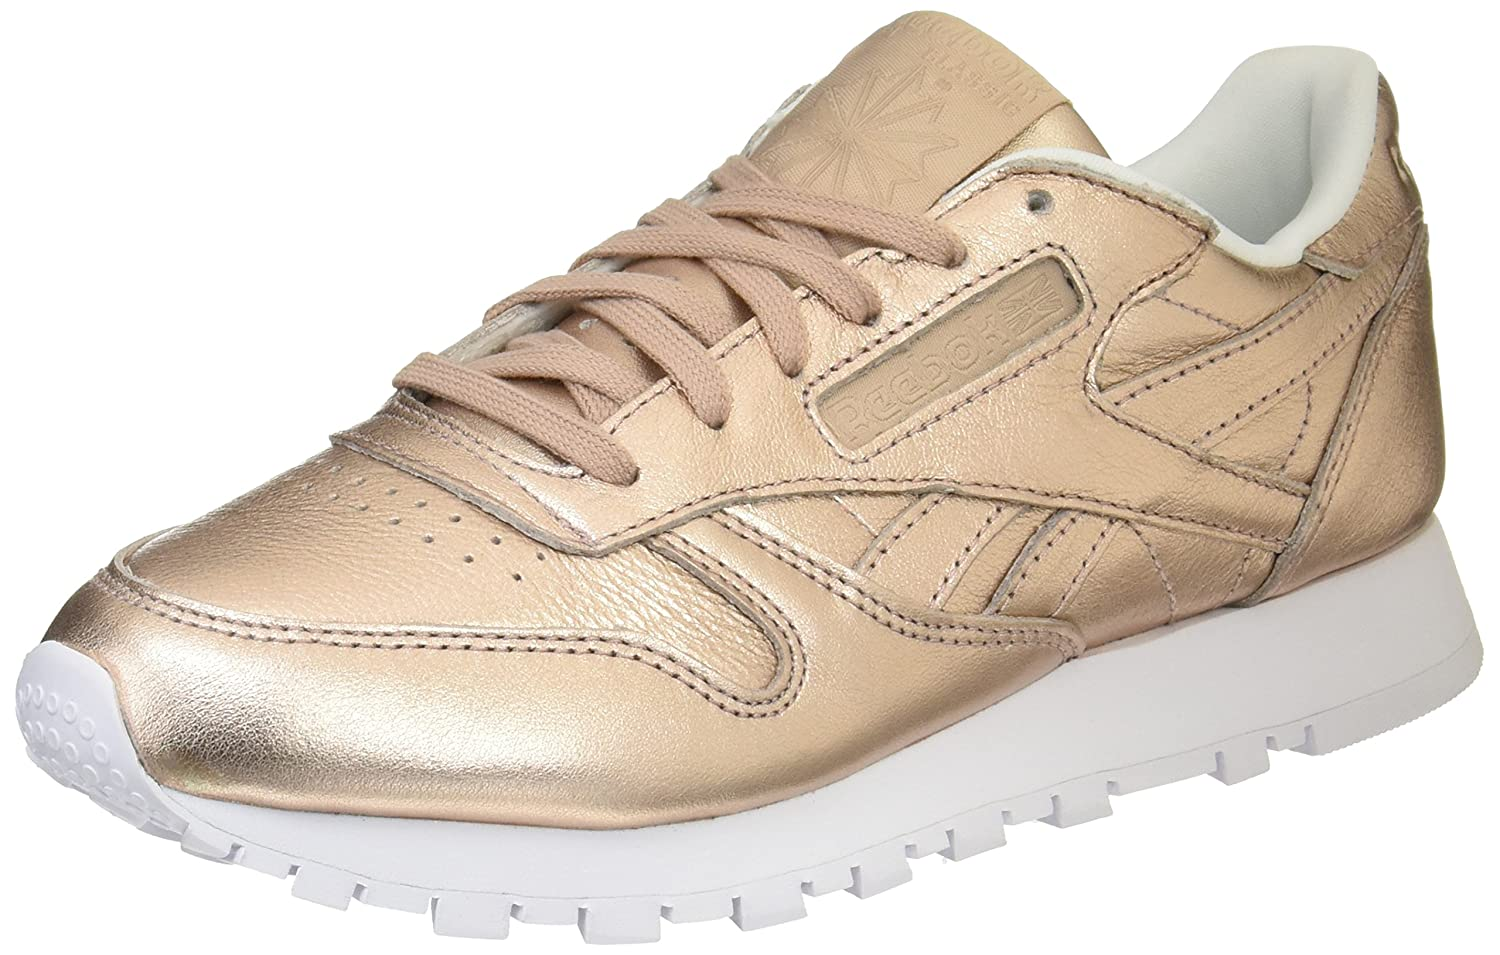 brand new 442d2 6fe13 Amazon.com   Reebok Classic Melted Metal Pearl Womens Trainers   Fashion  Sneakers